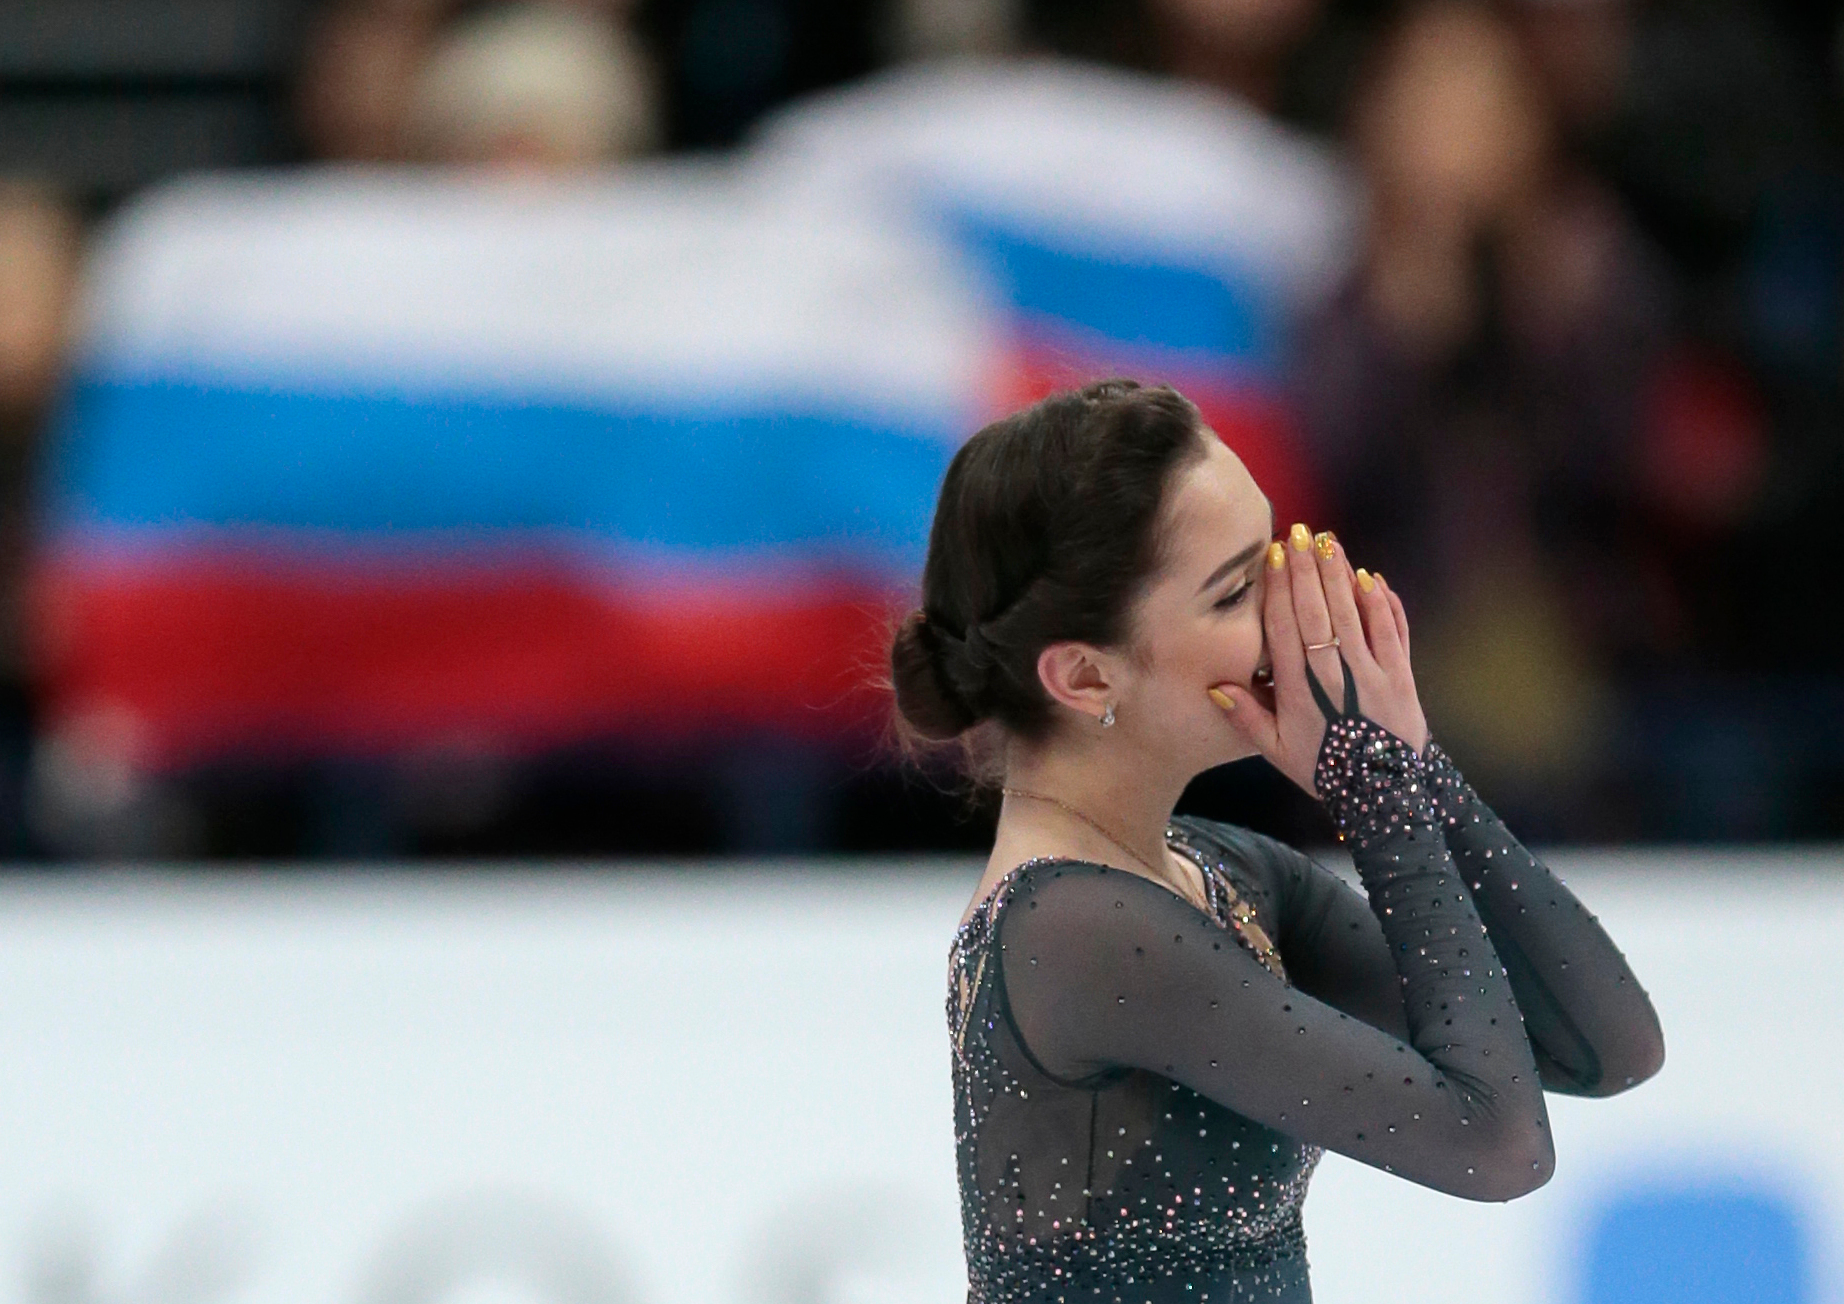 Evgenia Medvedeva, of Russia, covers her face after her free program at the World figure skating championships in Helsinki, Finland, on Friday, March 31. (AP Photo/Ivan Sekretarev)